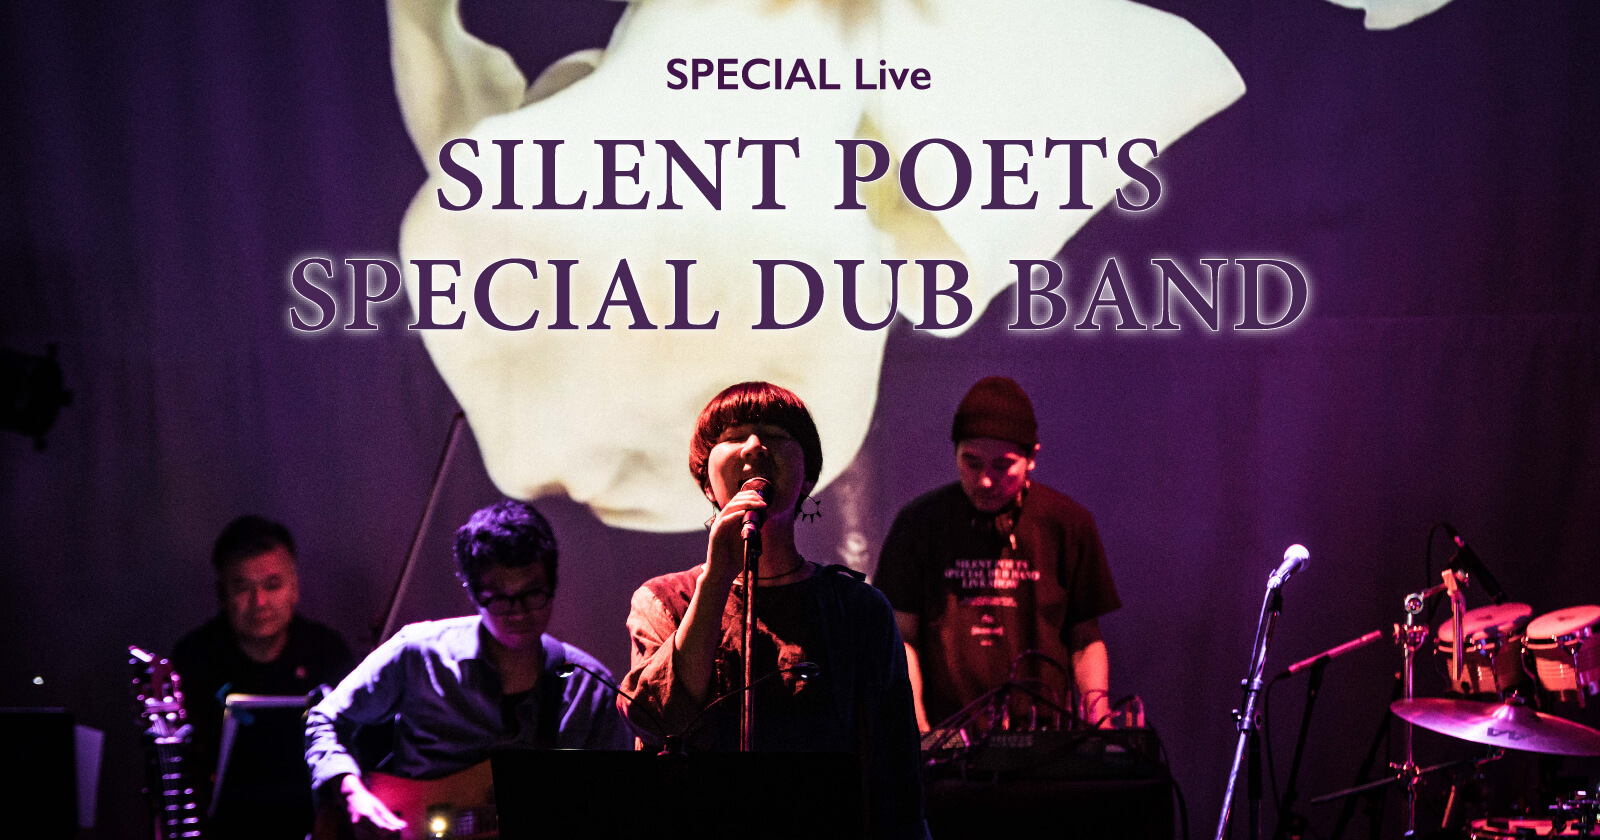 SILENT POETS SPECIAL DUB BAND